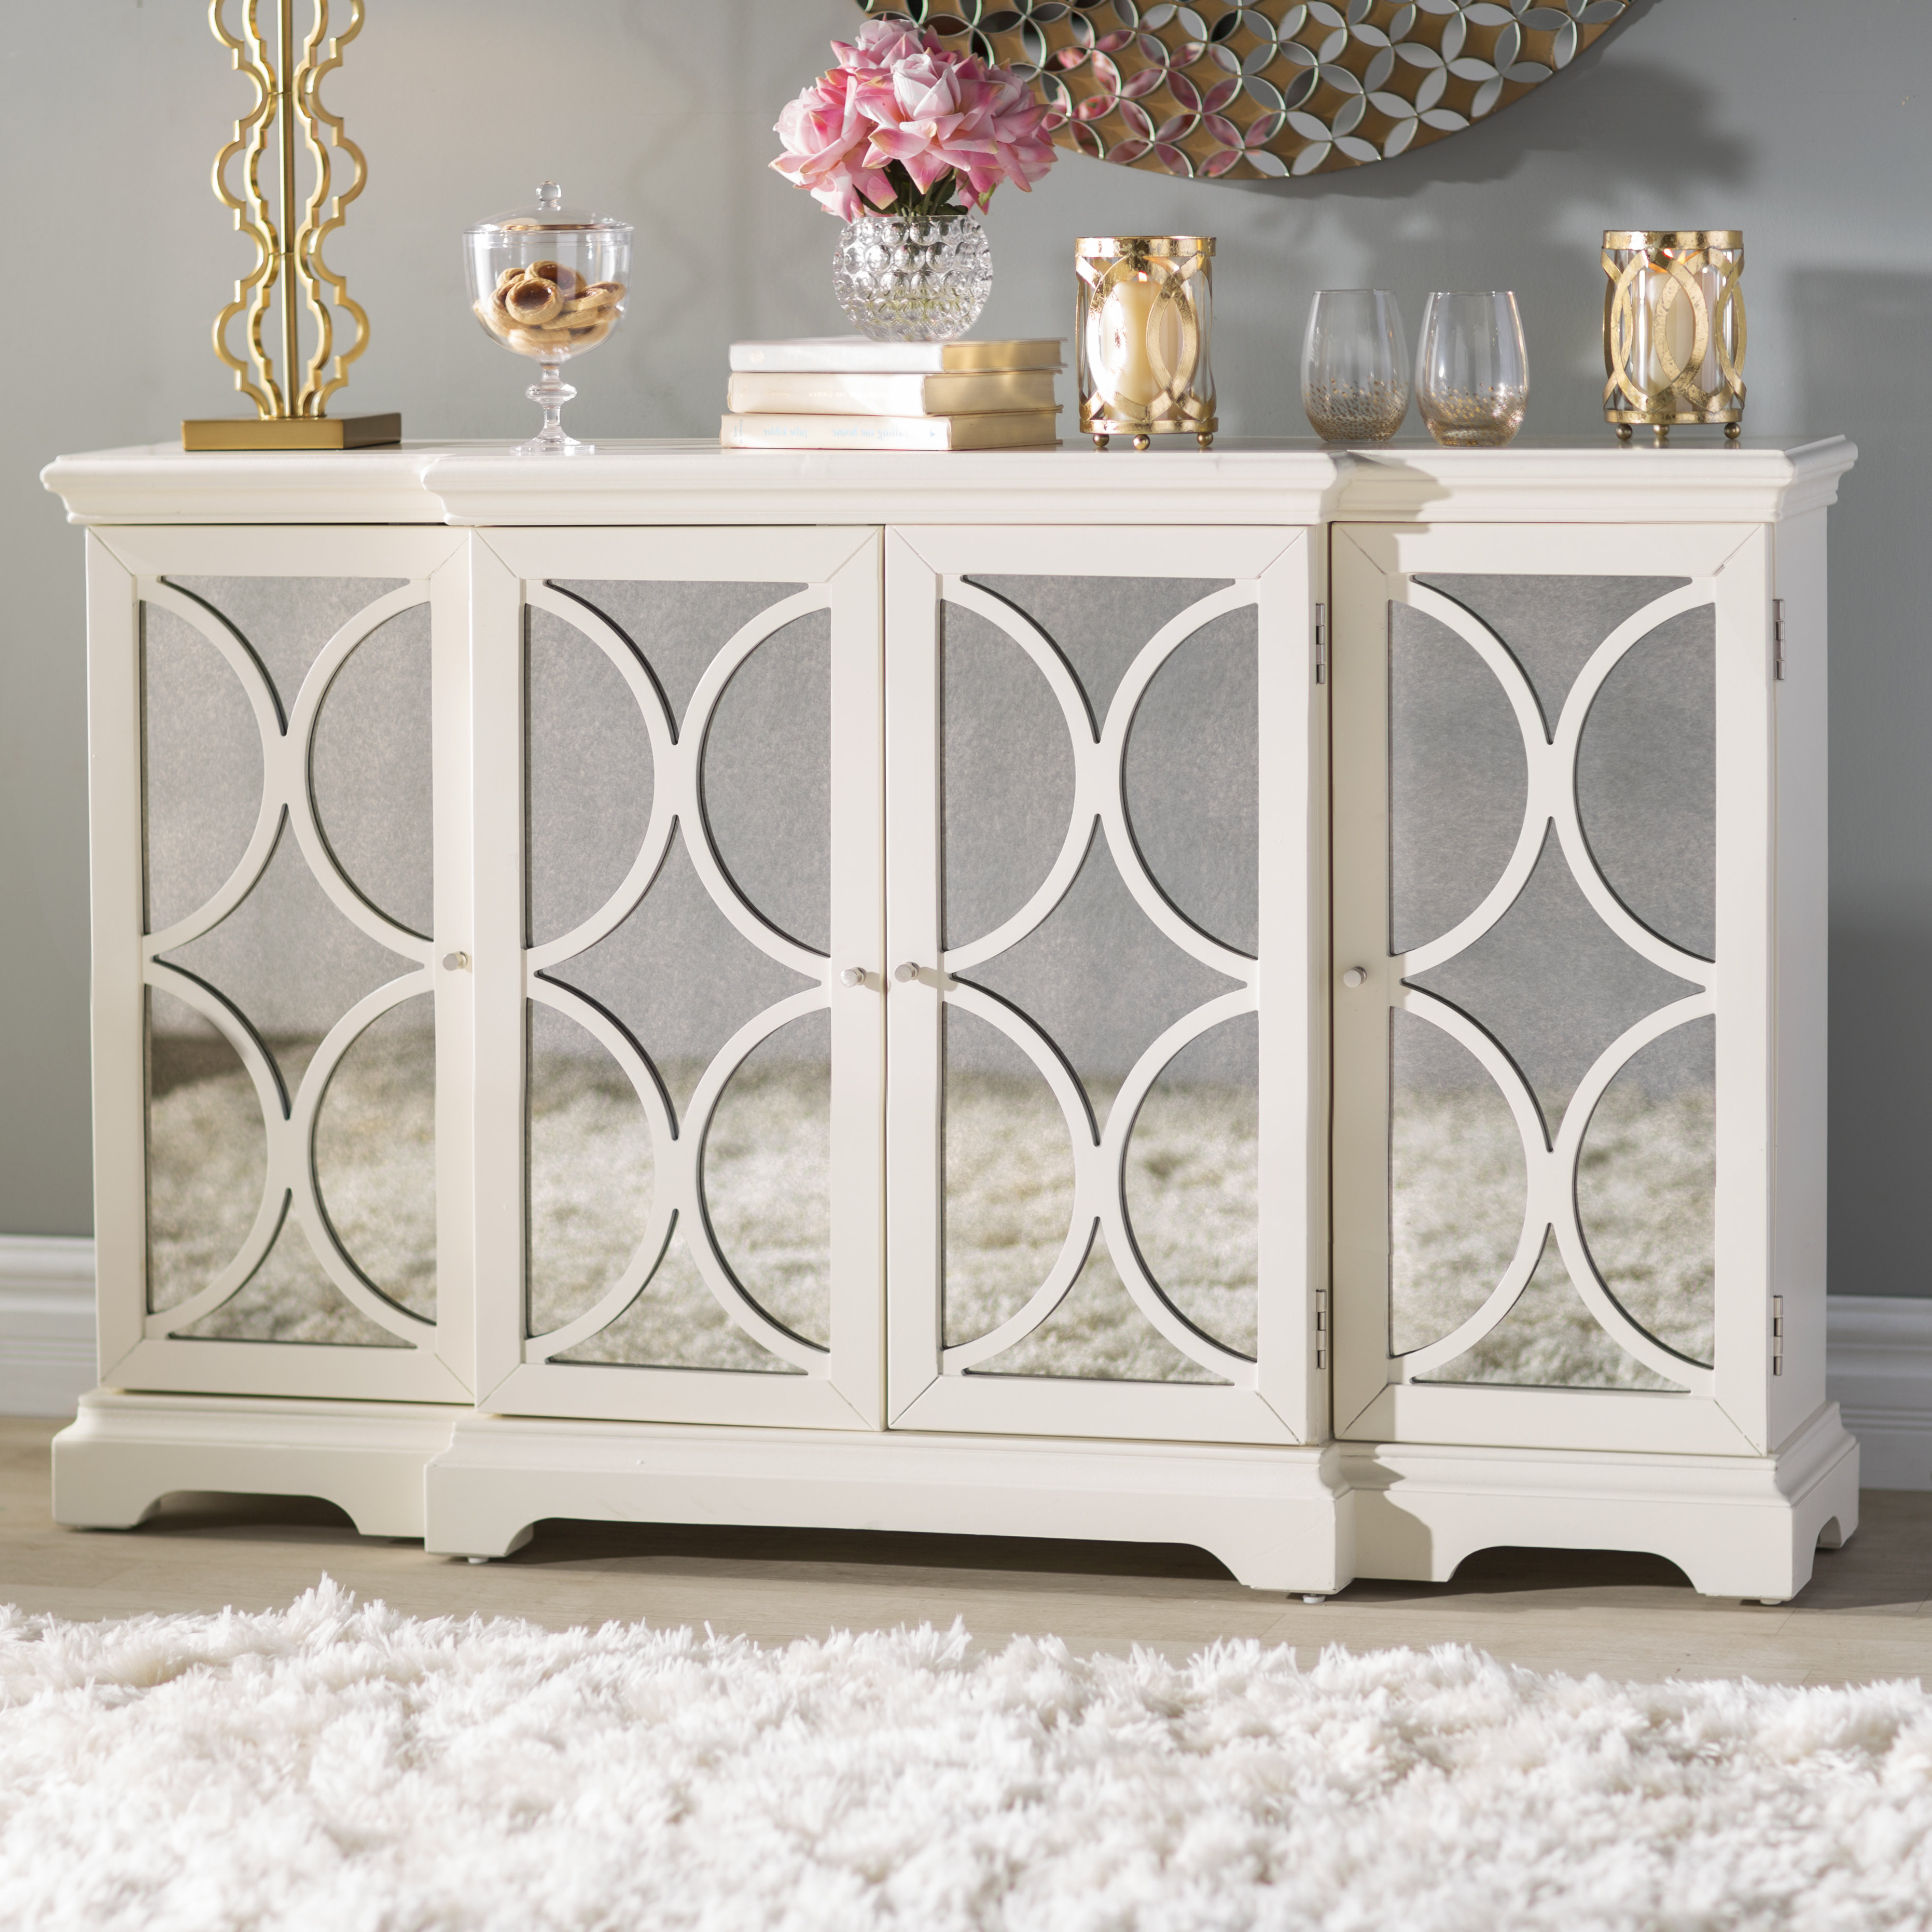 Cream Credenza | Wayfair In Floral Beauty Credenzas (View 15 of 20)